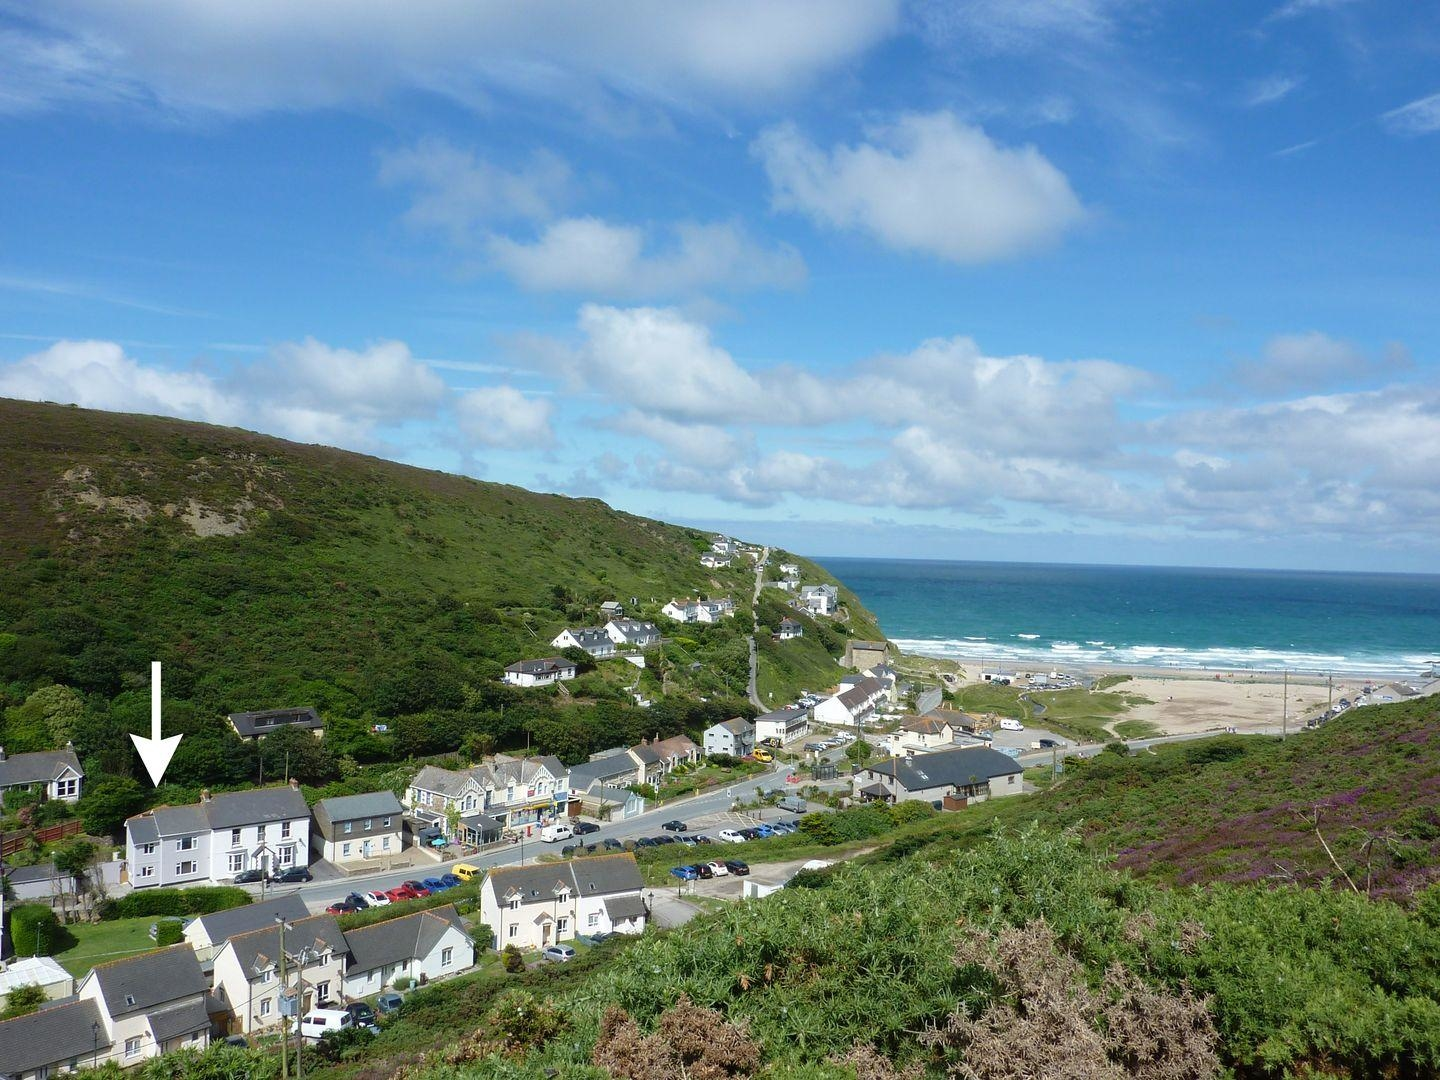 Stones Throw, Porthtowan, Cornwall